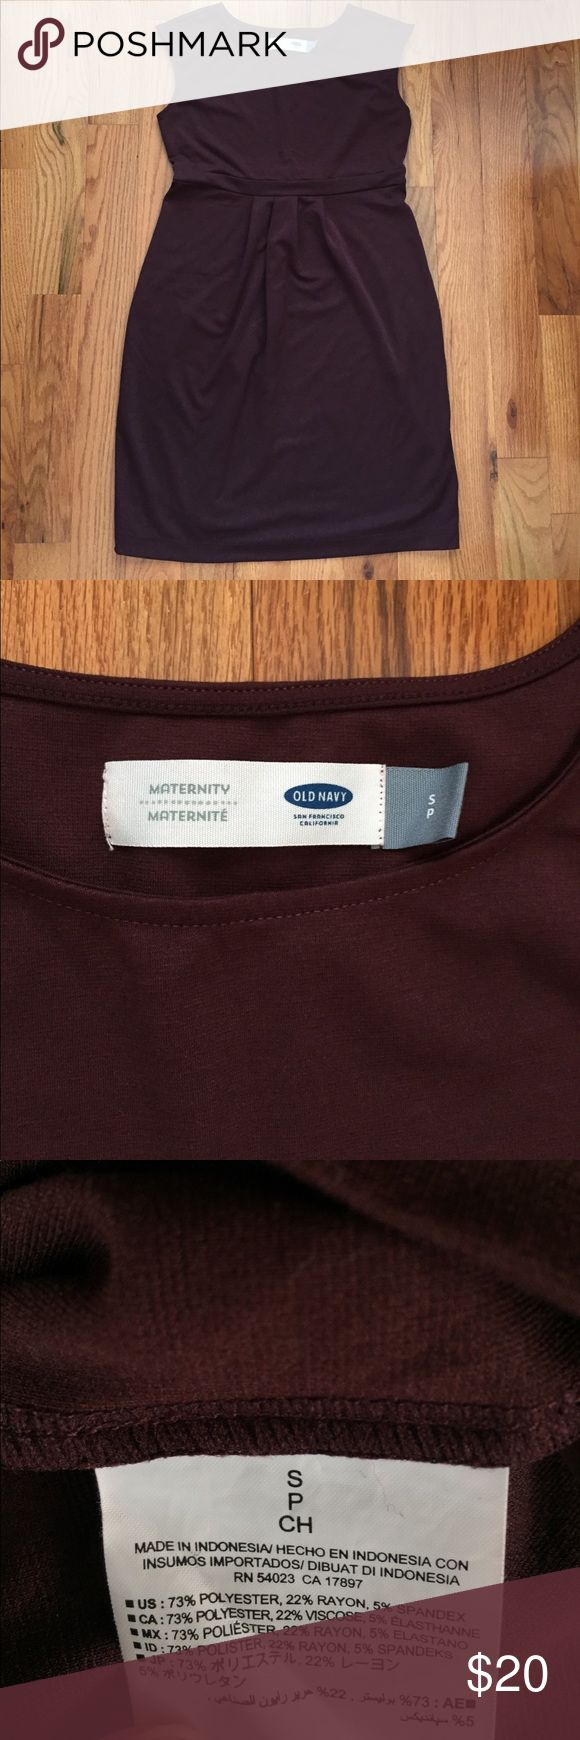 Old Navy Maternity Dress Old Navy Maternity 👗 . This dress can be worn dressed up or casual. The second picture shows the maroon color well. Old Navy Dresses